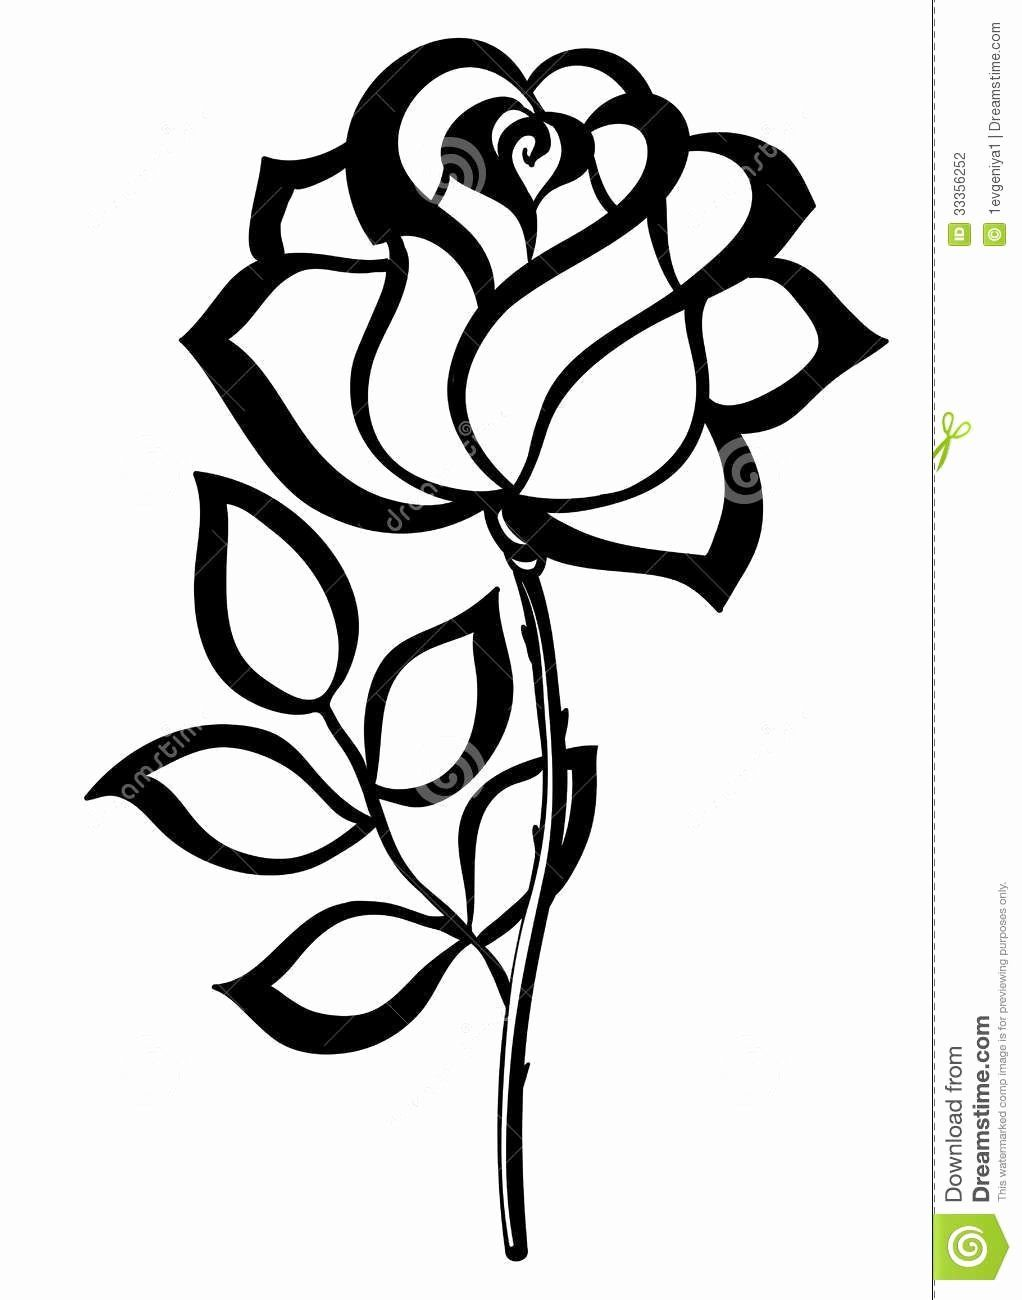 Single Flower Coloring Pages Unique Simple Rose Outline In 2020 Flower Coloring Pages Single Flower Roses Drawing